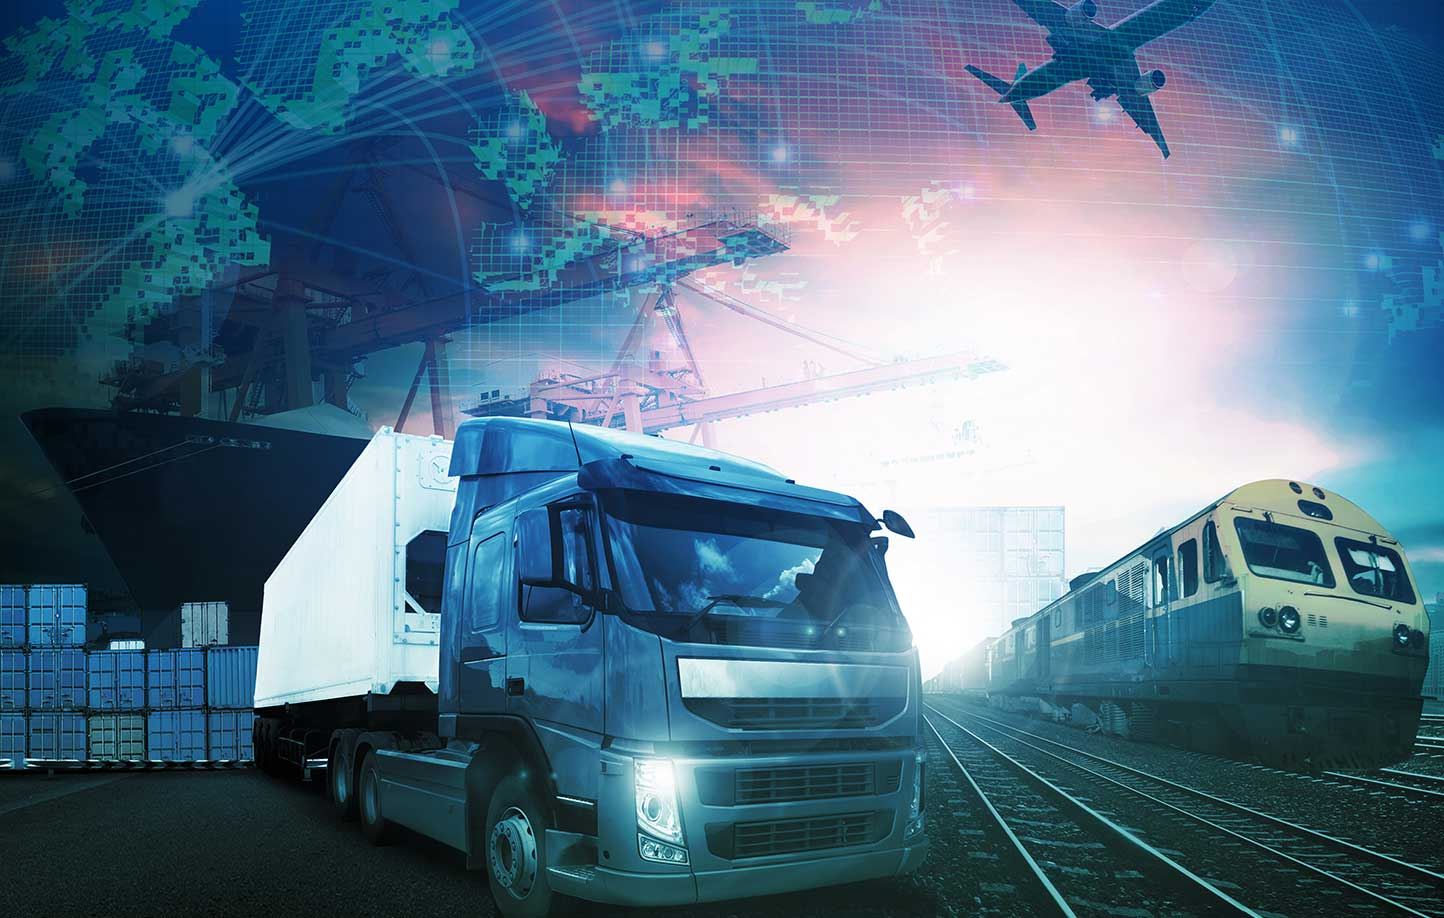 Plane, train, truck or ship supply chain